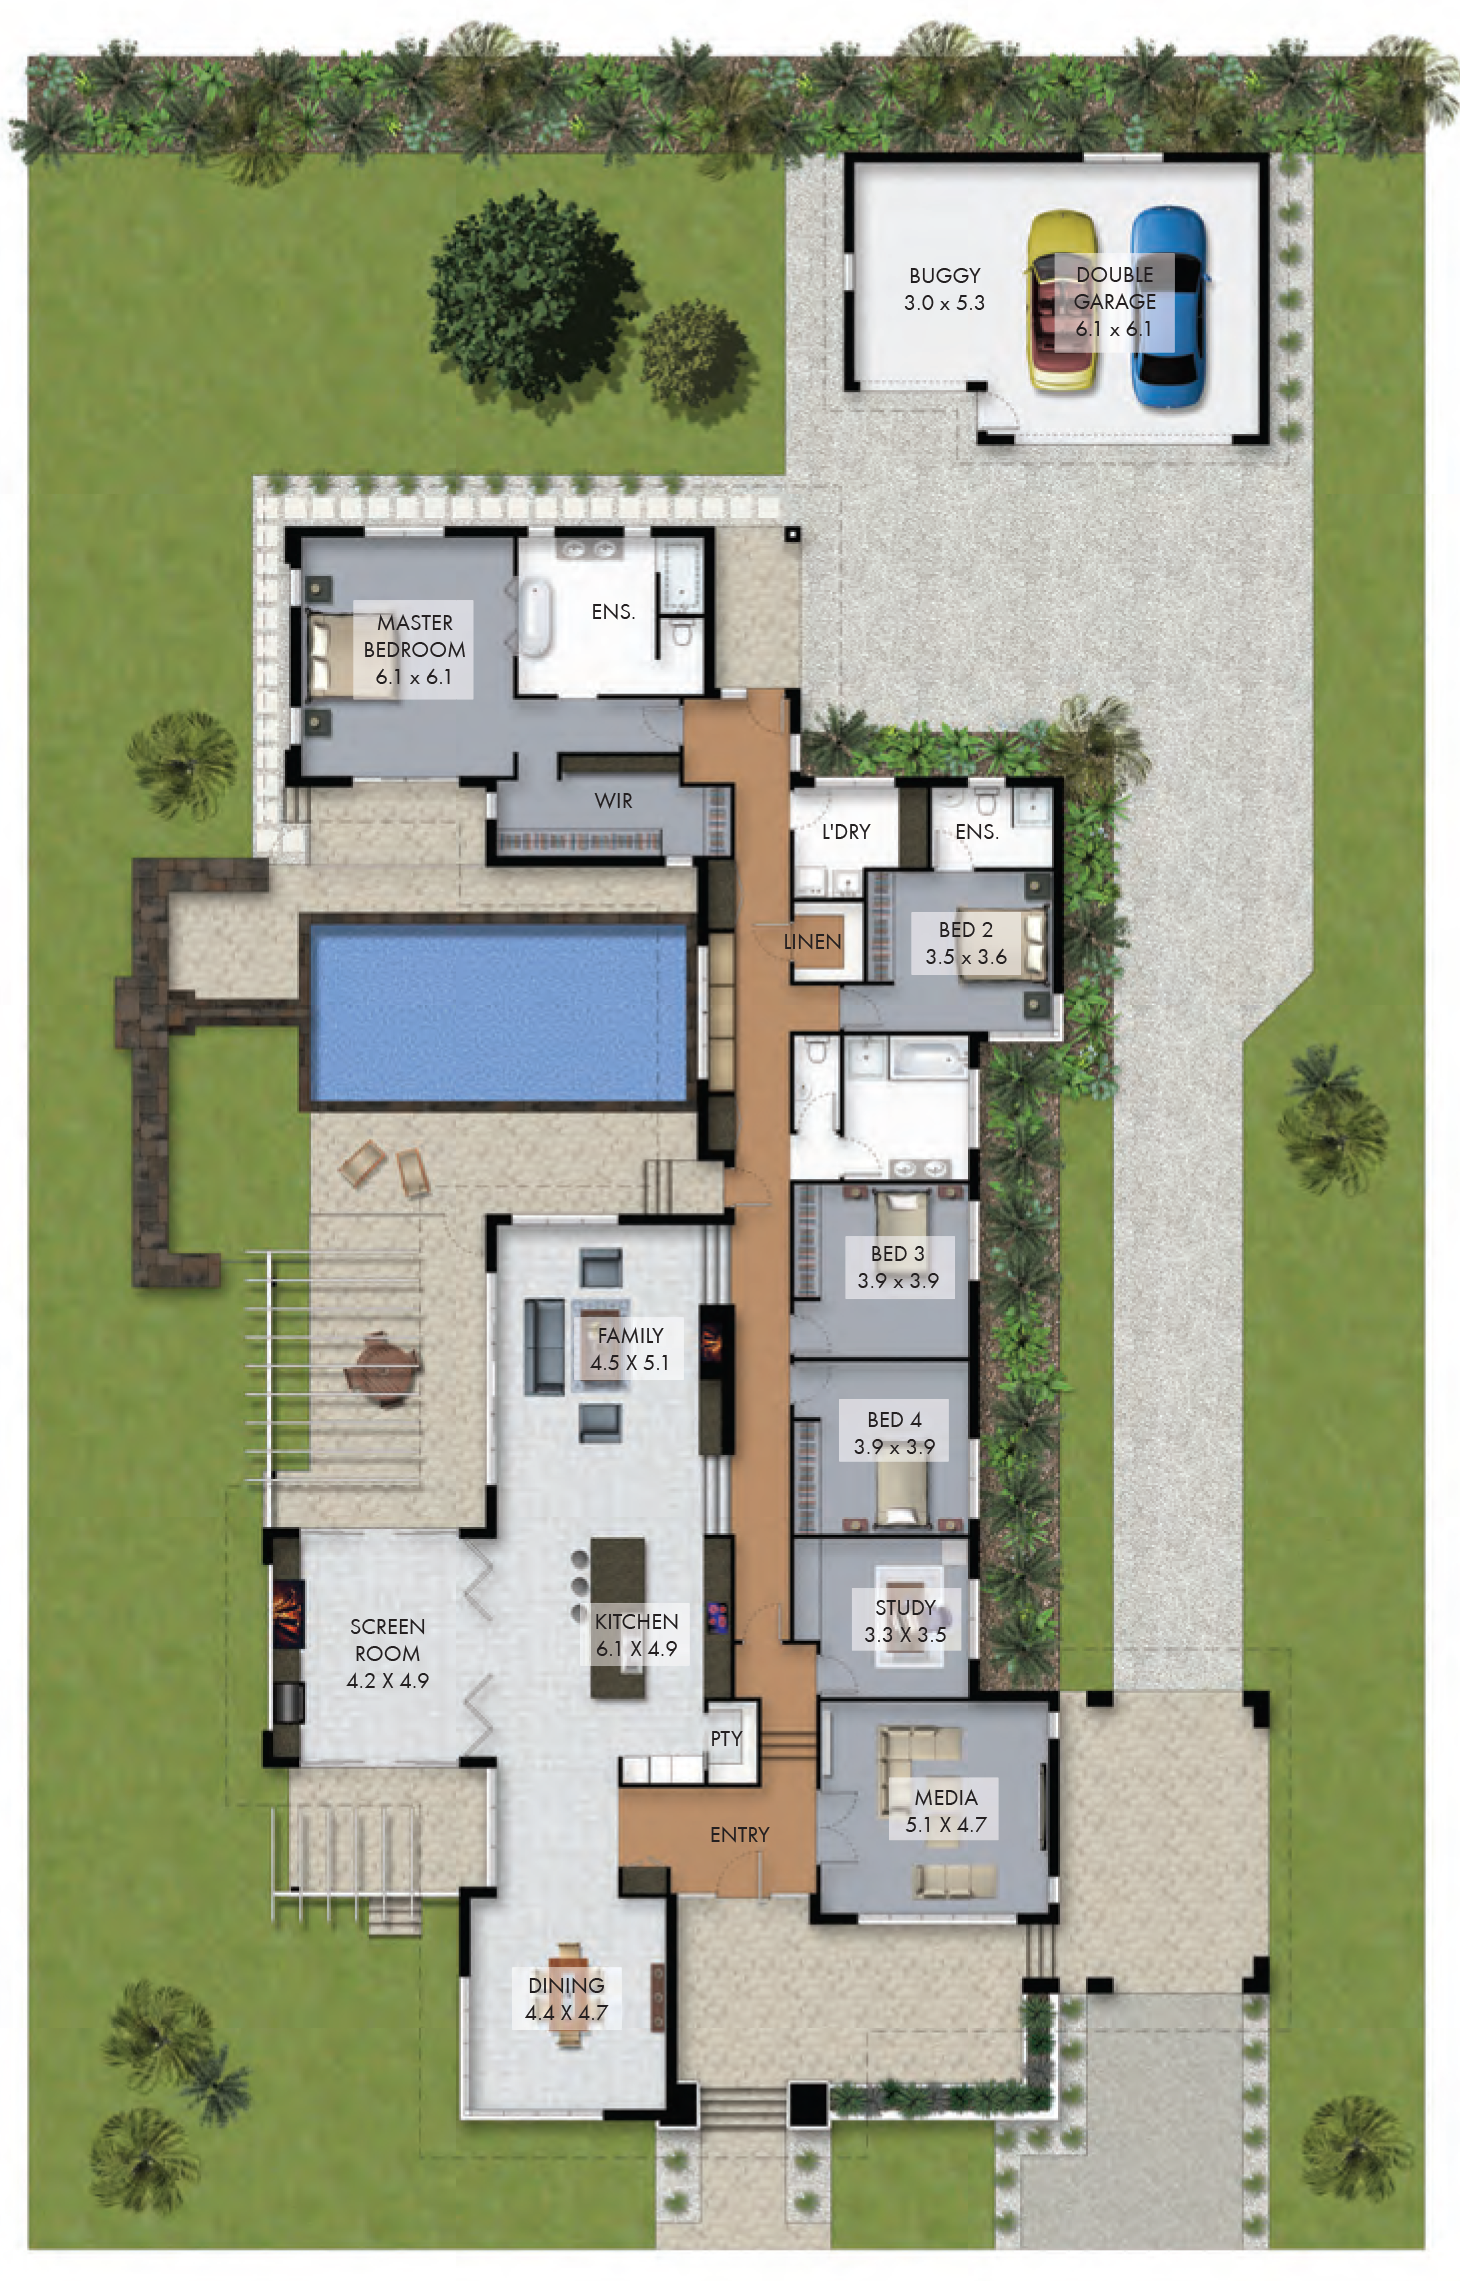 0d13dd81a7e83ff4a61b88295503ef1a Top Result 50 New 7 Bedroom House Plans Gallery 2017 Hgd6